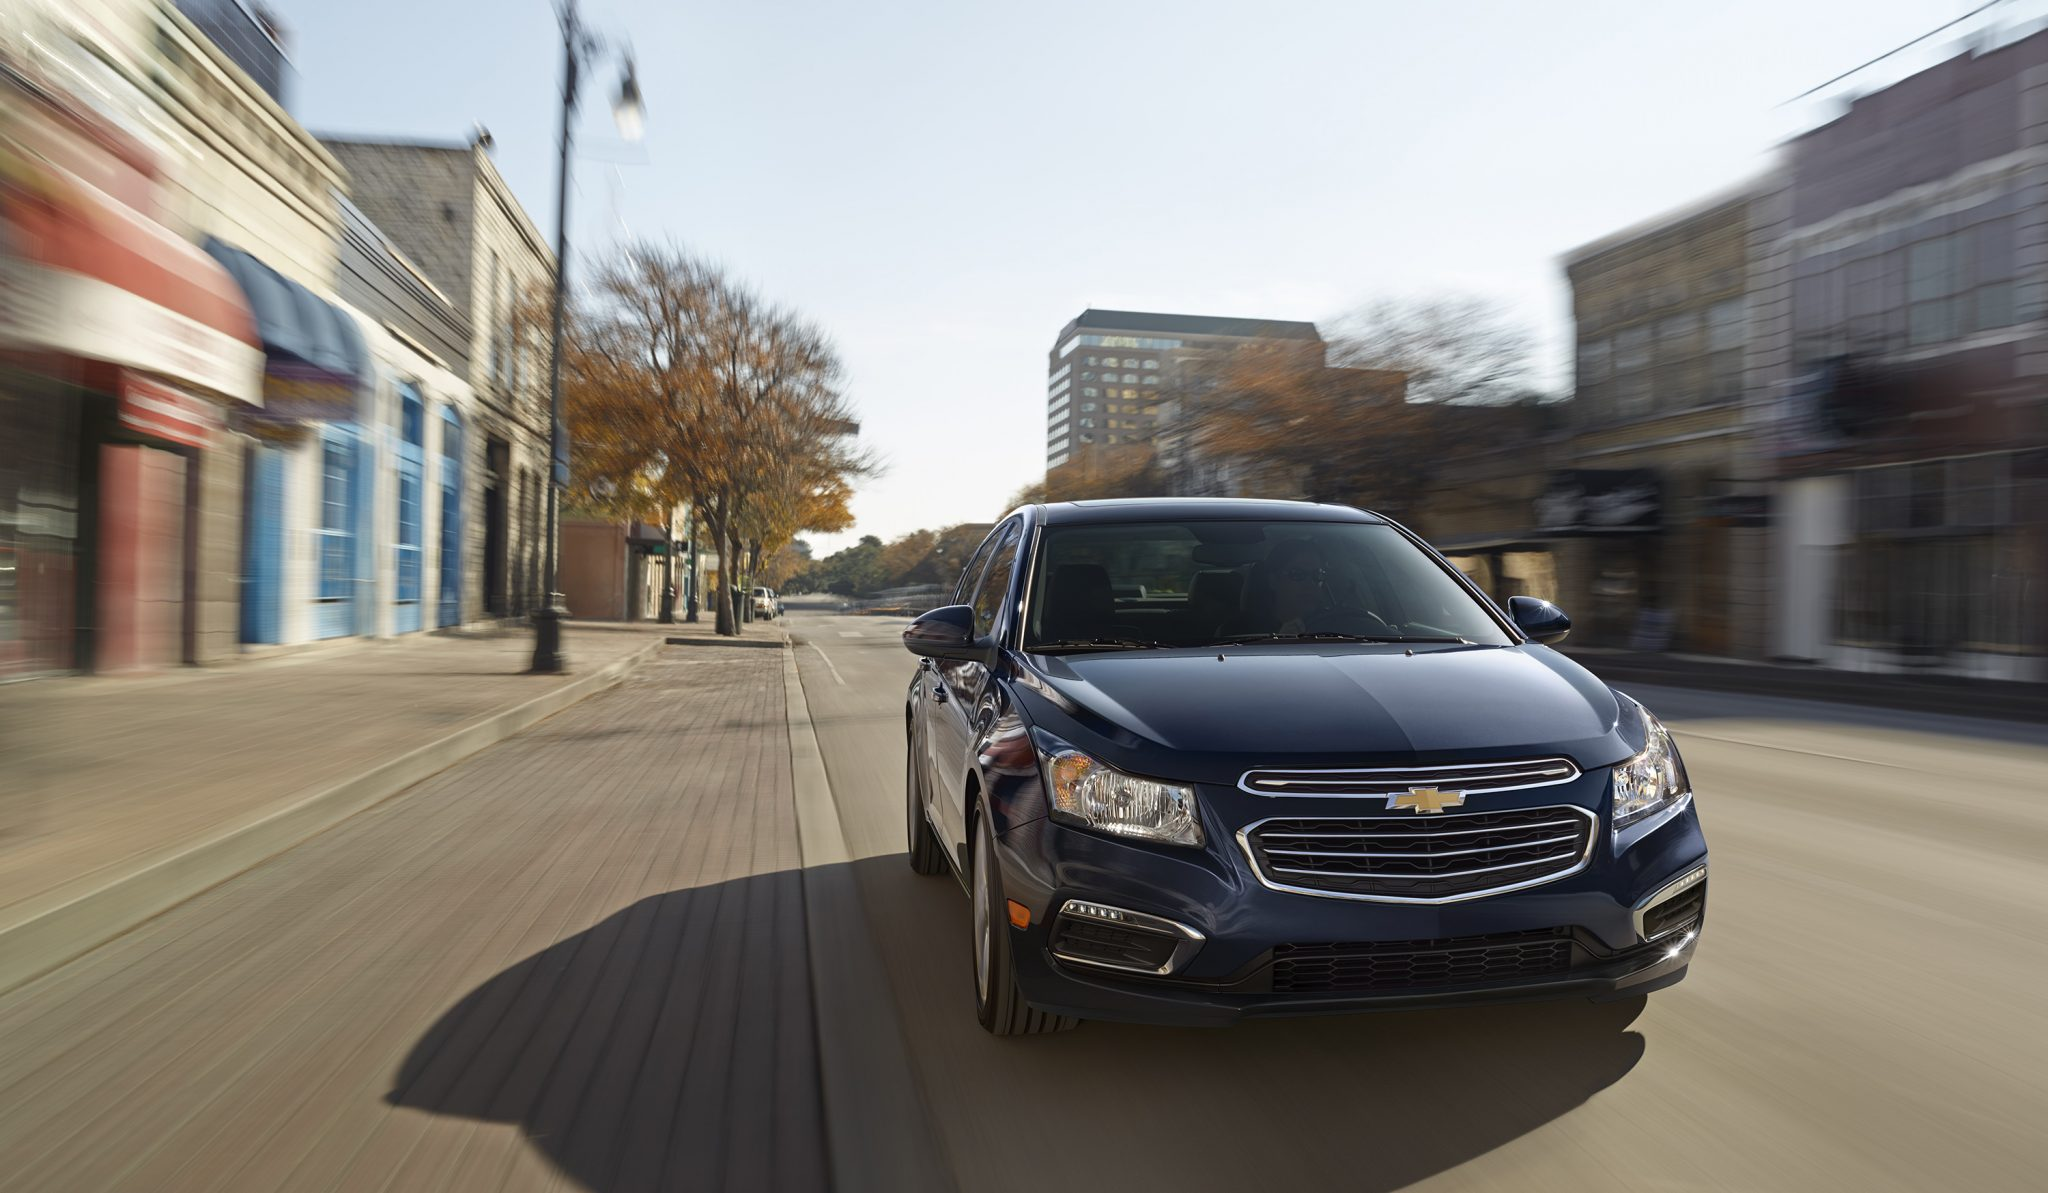 The 2015 Cruze is one of the cars available under the GM Educator Discount program.